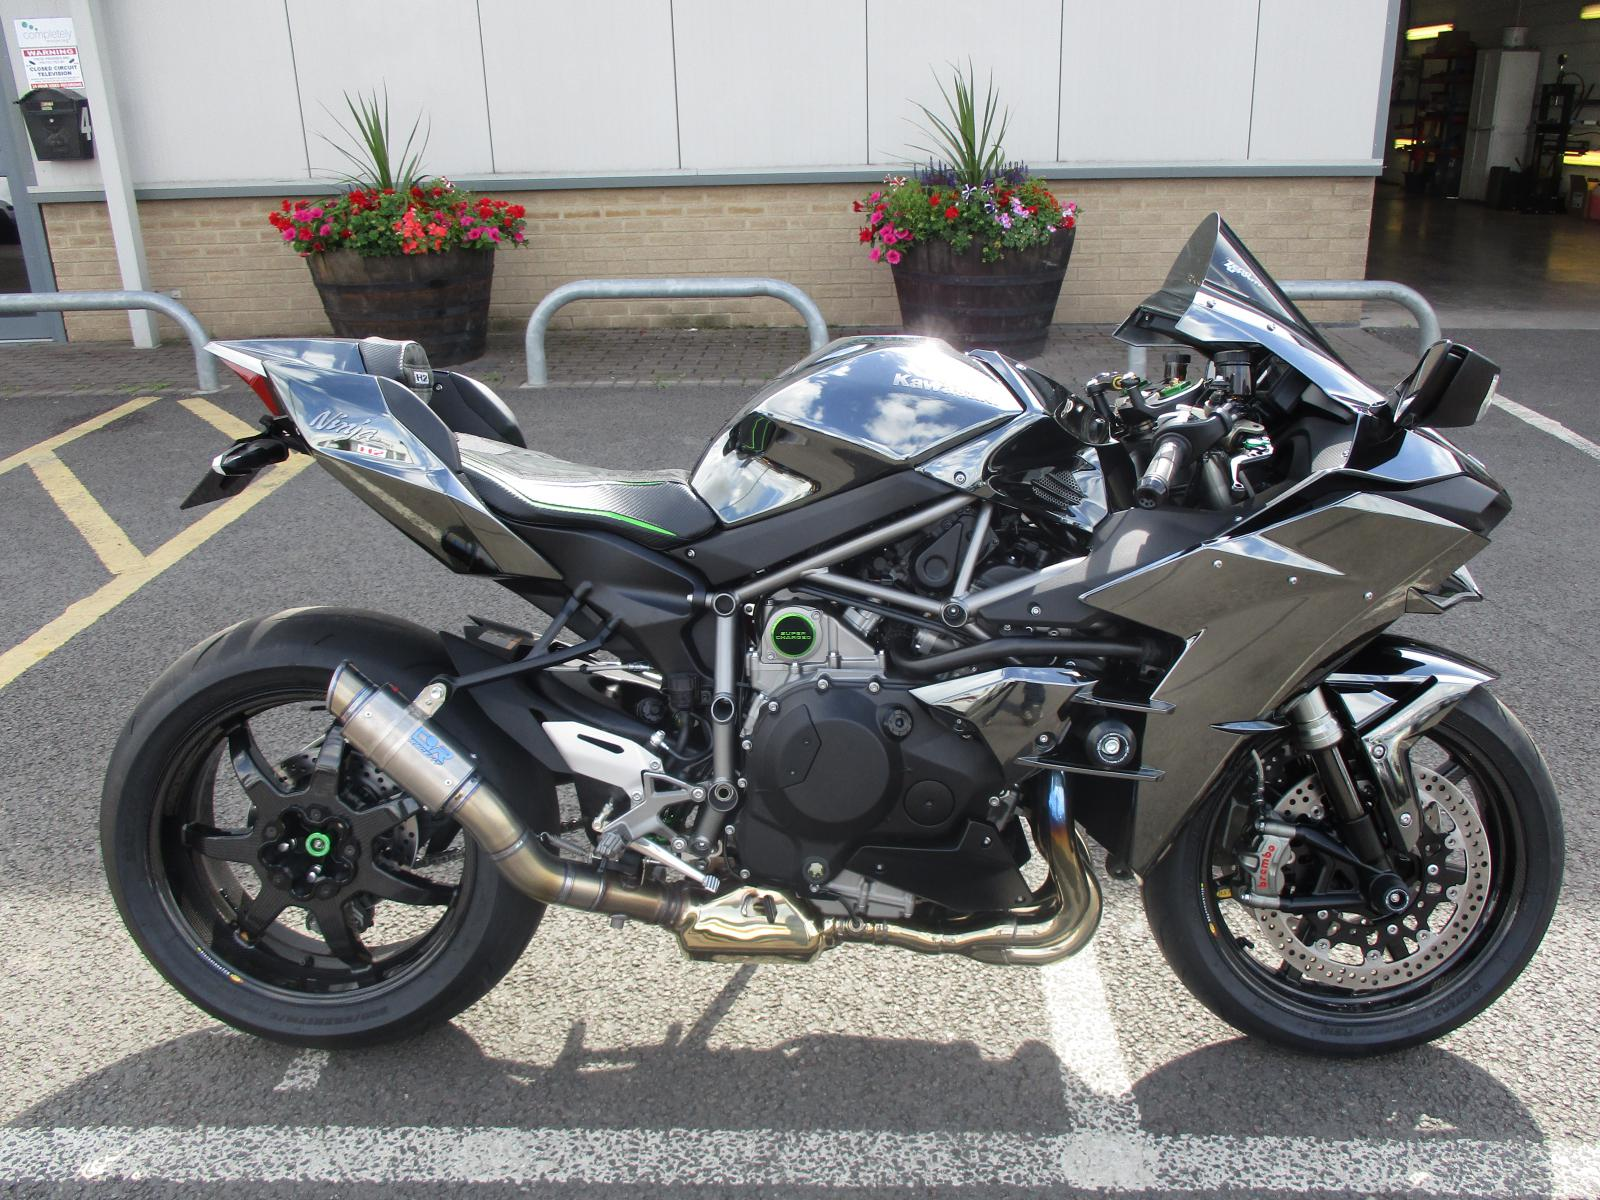 Kawasaki Ninja H2 Forum View Single Post Hi From Yorkshire Uk